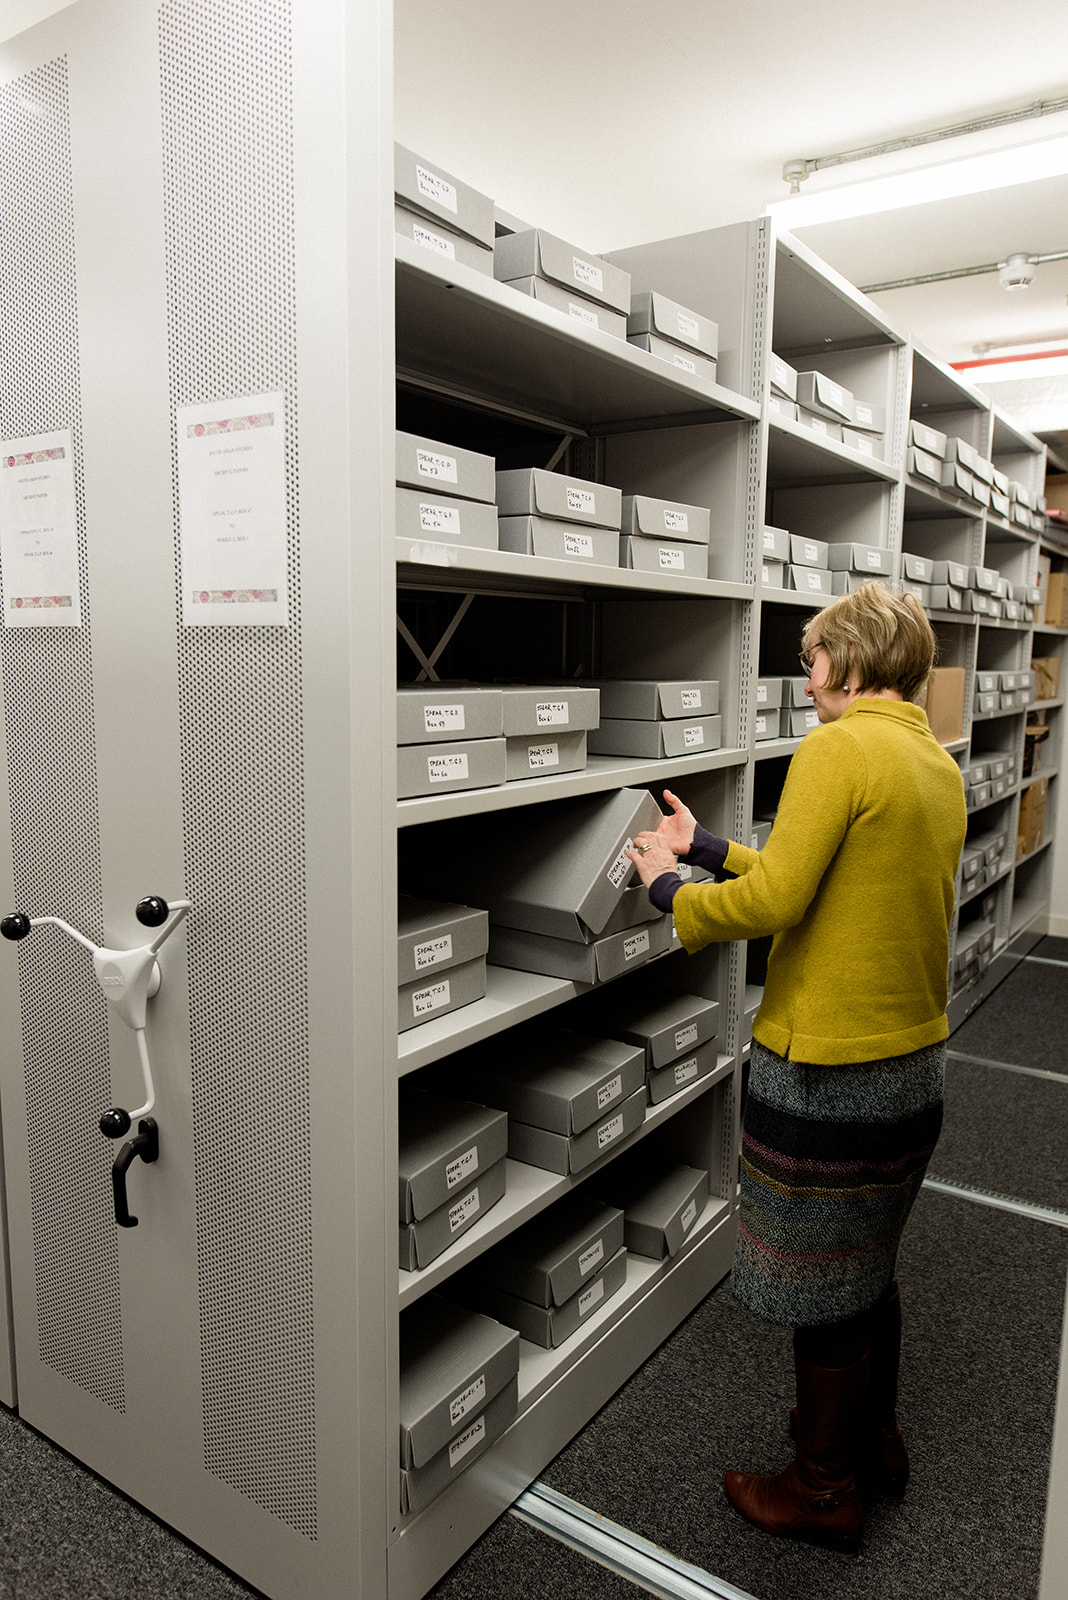 Archivist in storage area inspecting archive boxes